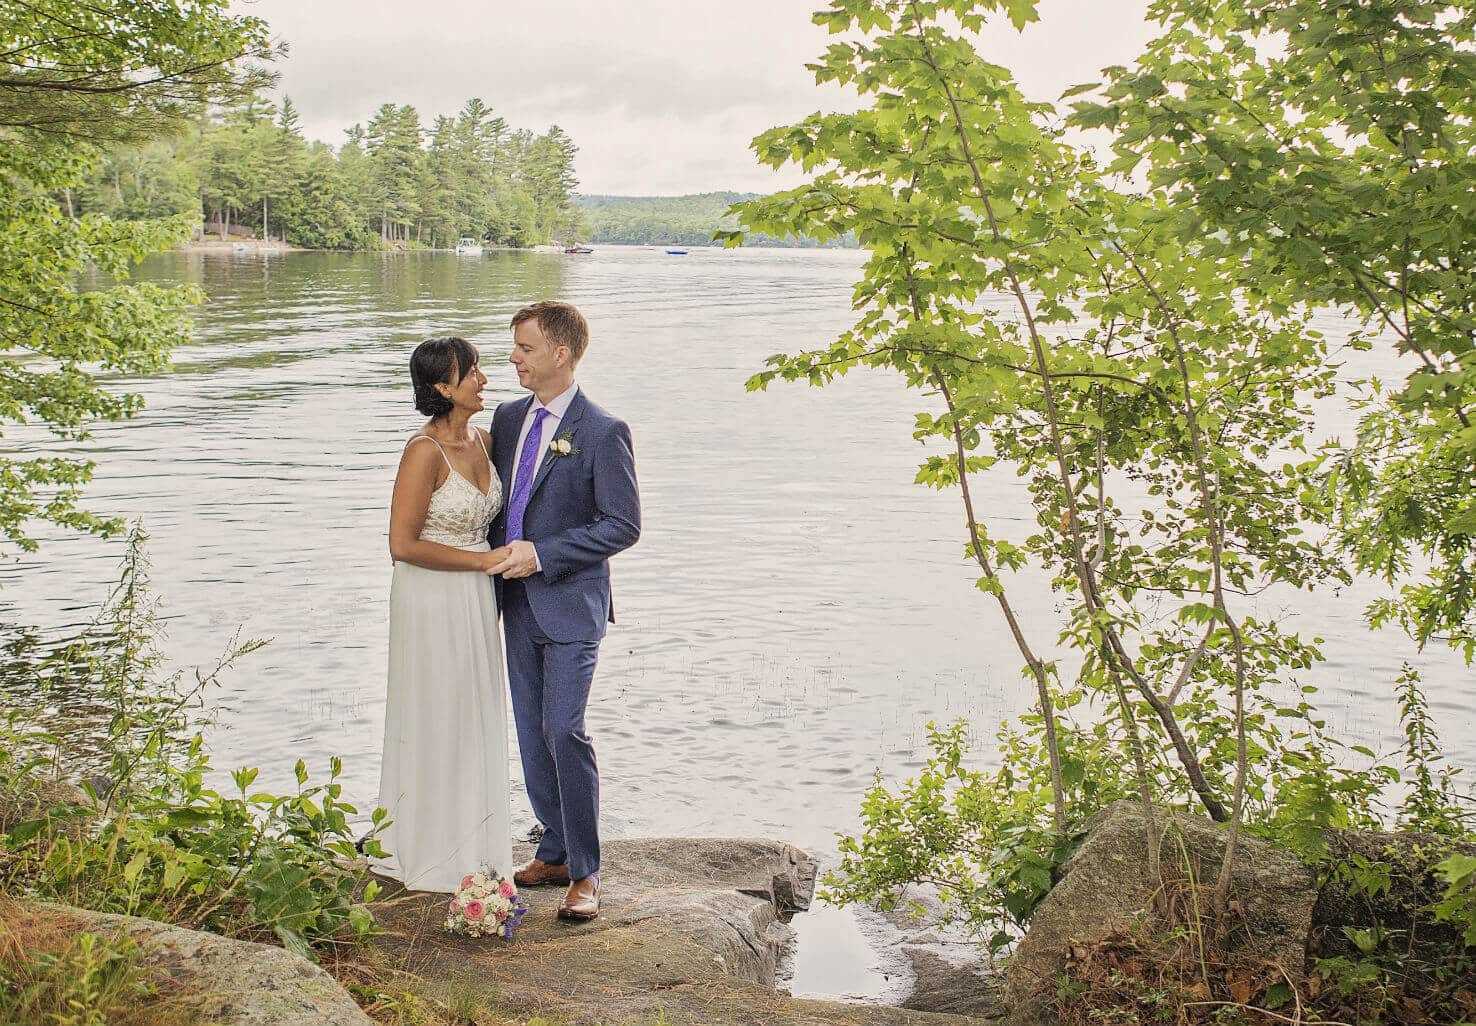 Newlyweds standing by lake